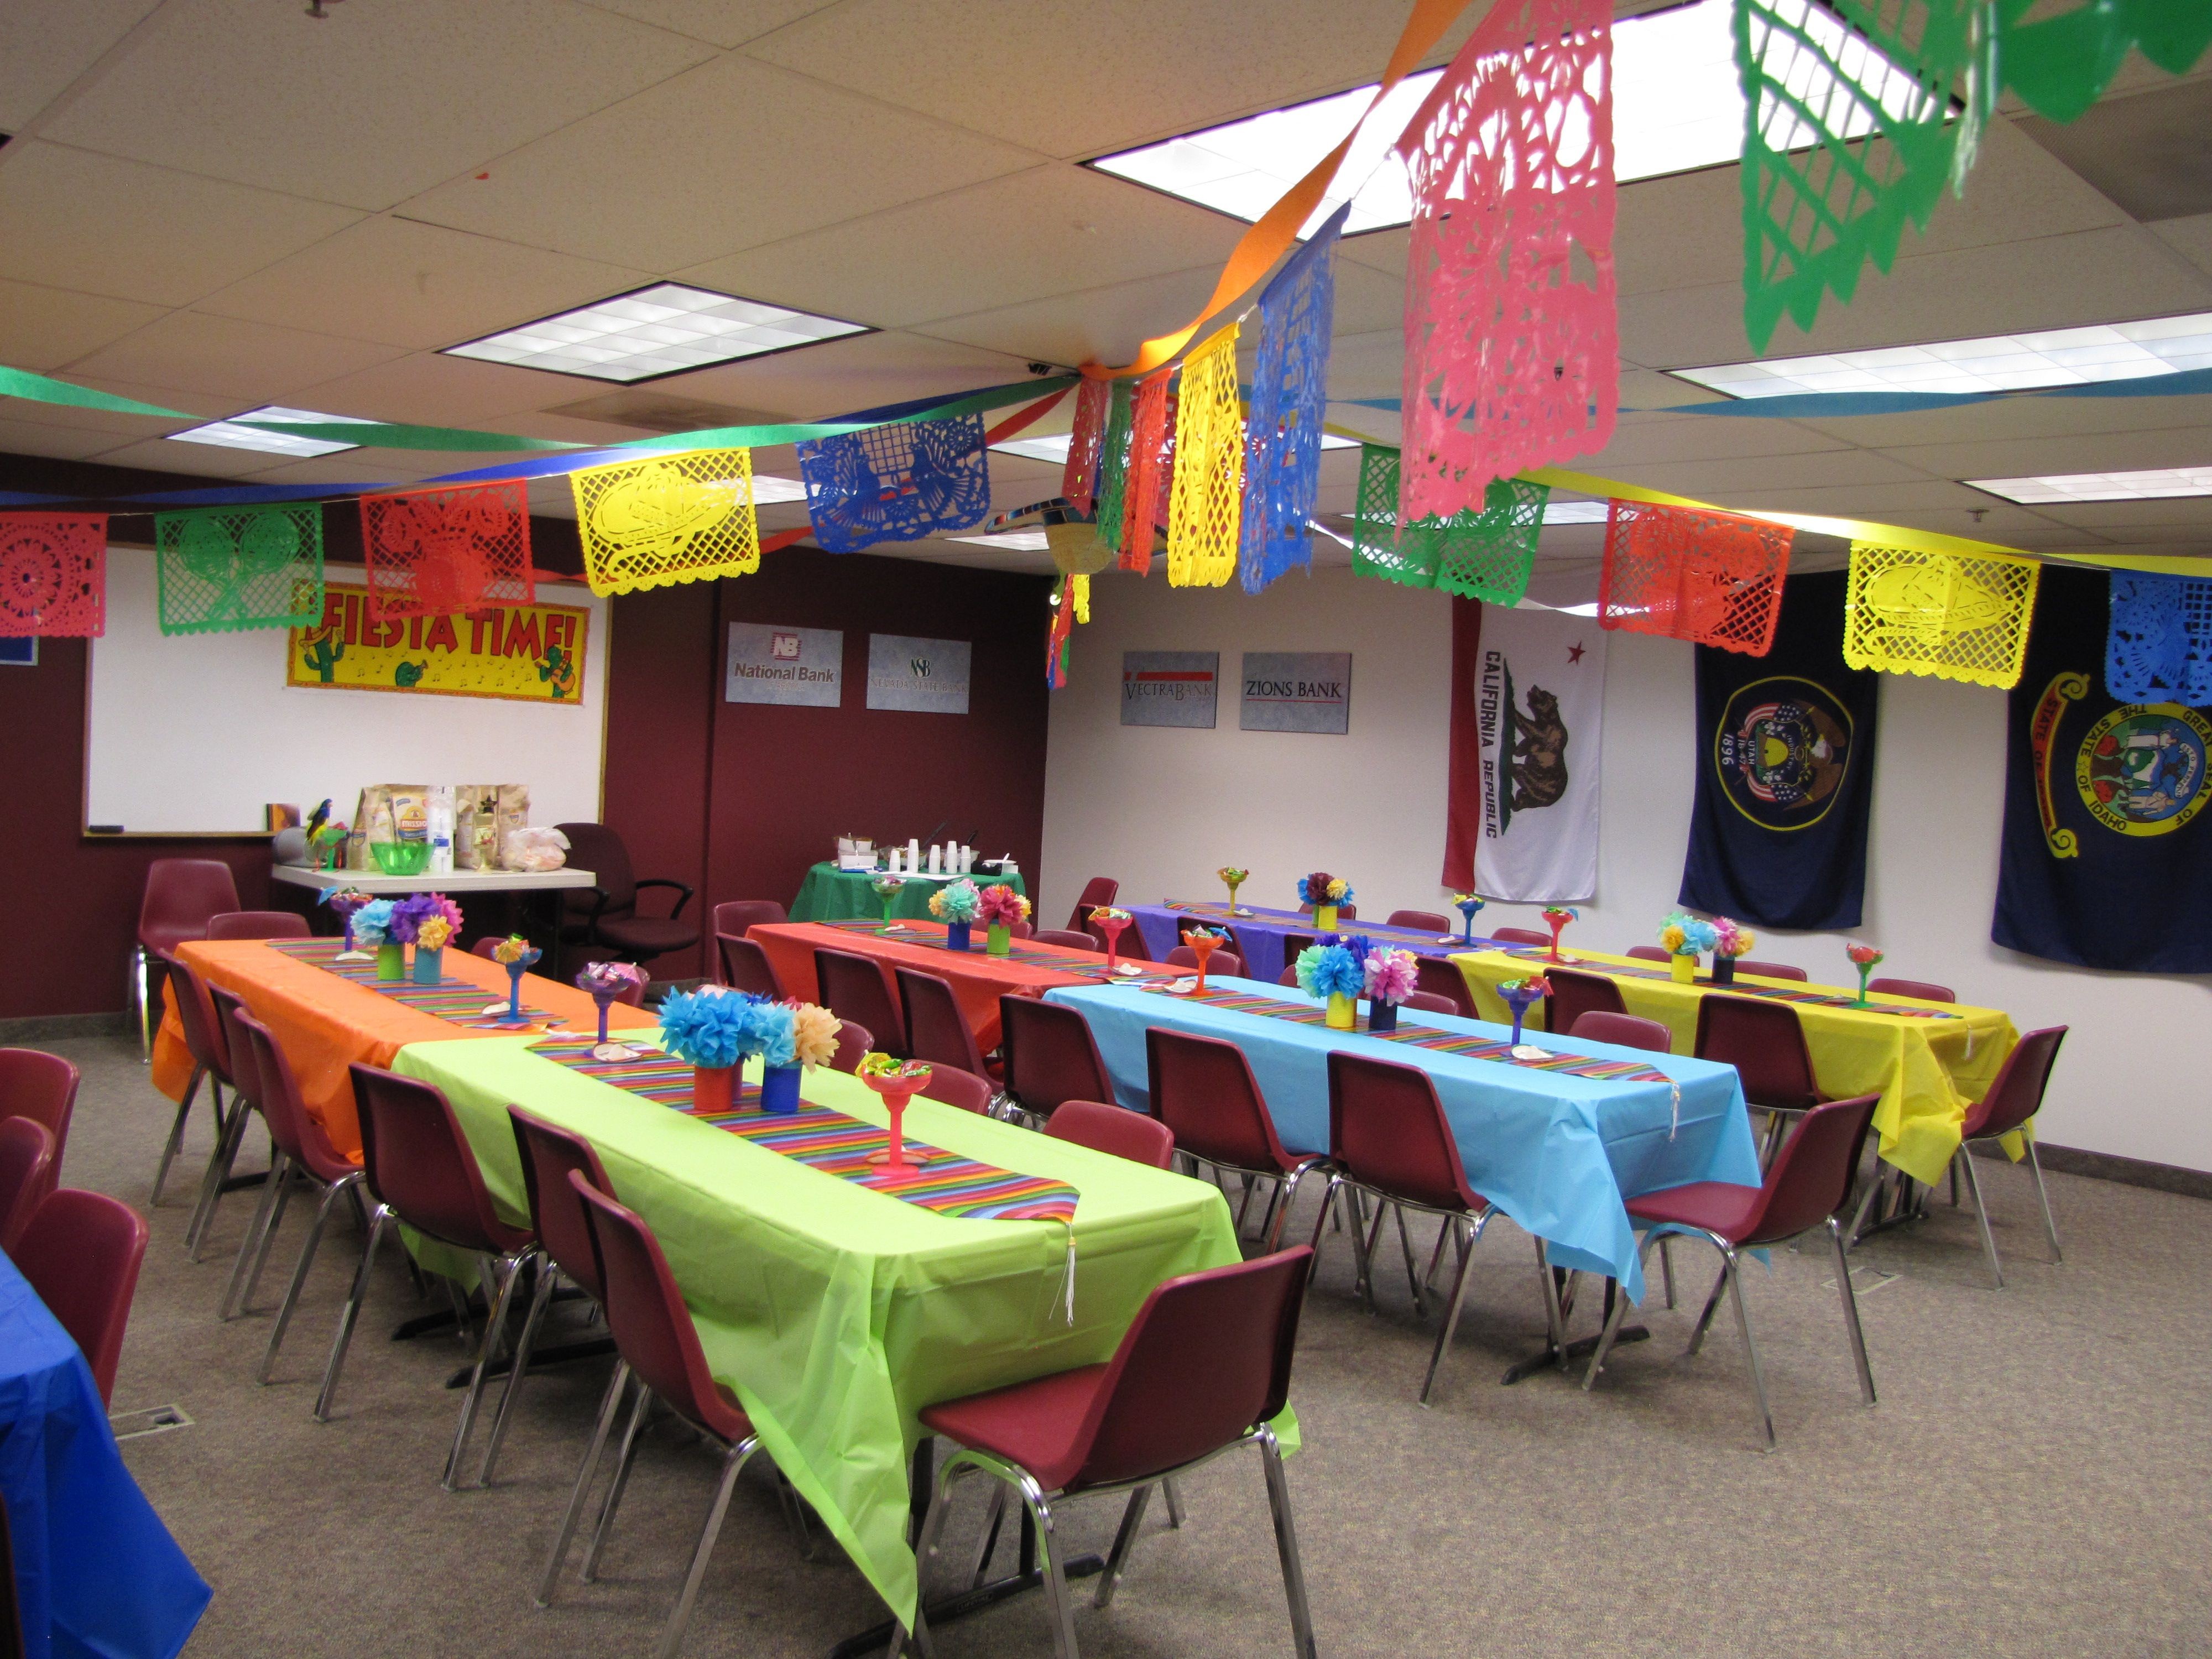 Decorations for our office party fiesta de seis de mayo for Home decor parties canada